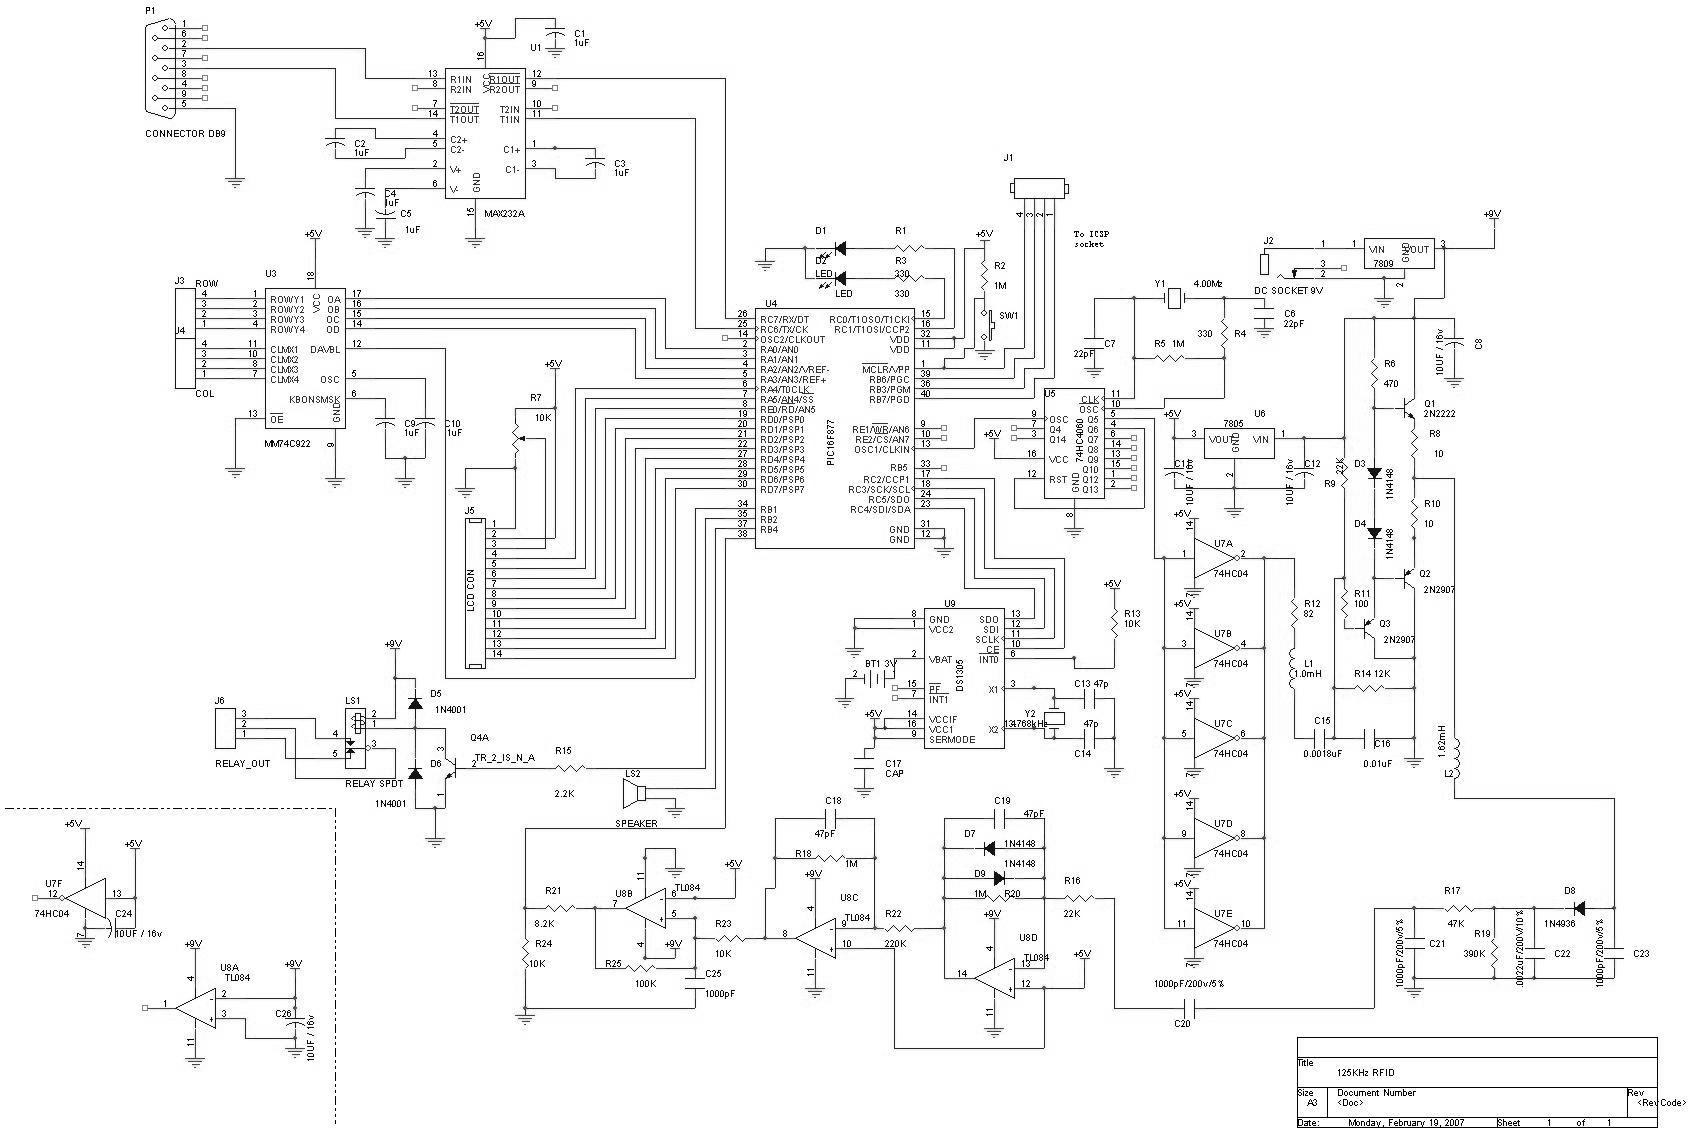 Ups Schematic Circuit Diagram, Ups, Free Engine Image For